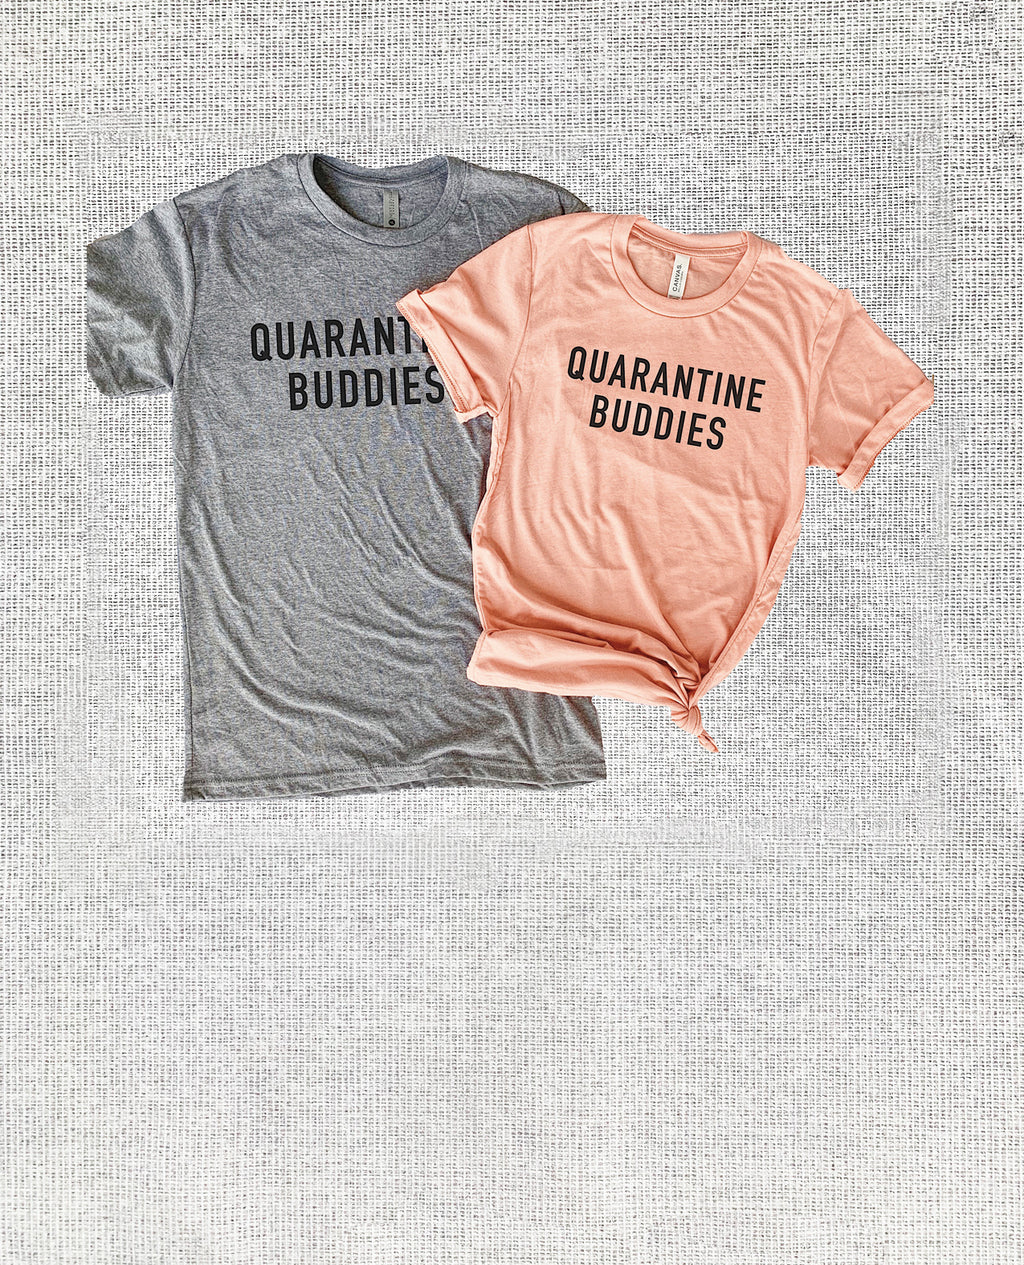 Rock these cute Quarantine Buddies matching tees while you stay home! Enjoy staying in with your quarantine buddy by your side while you Netflix and chill